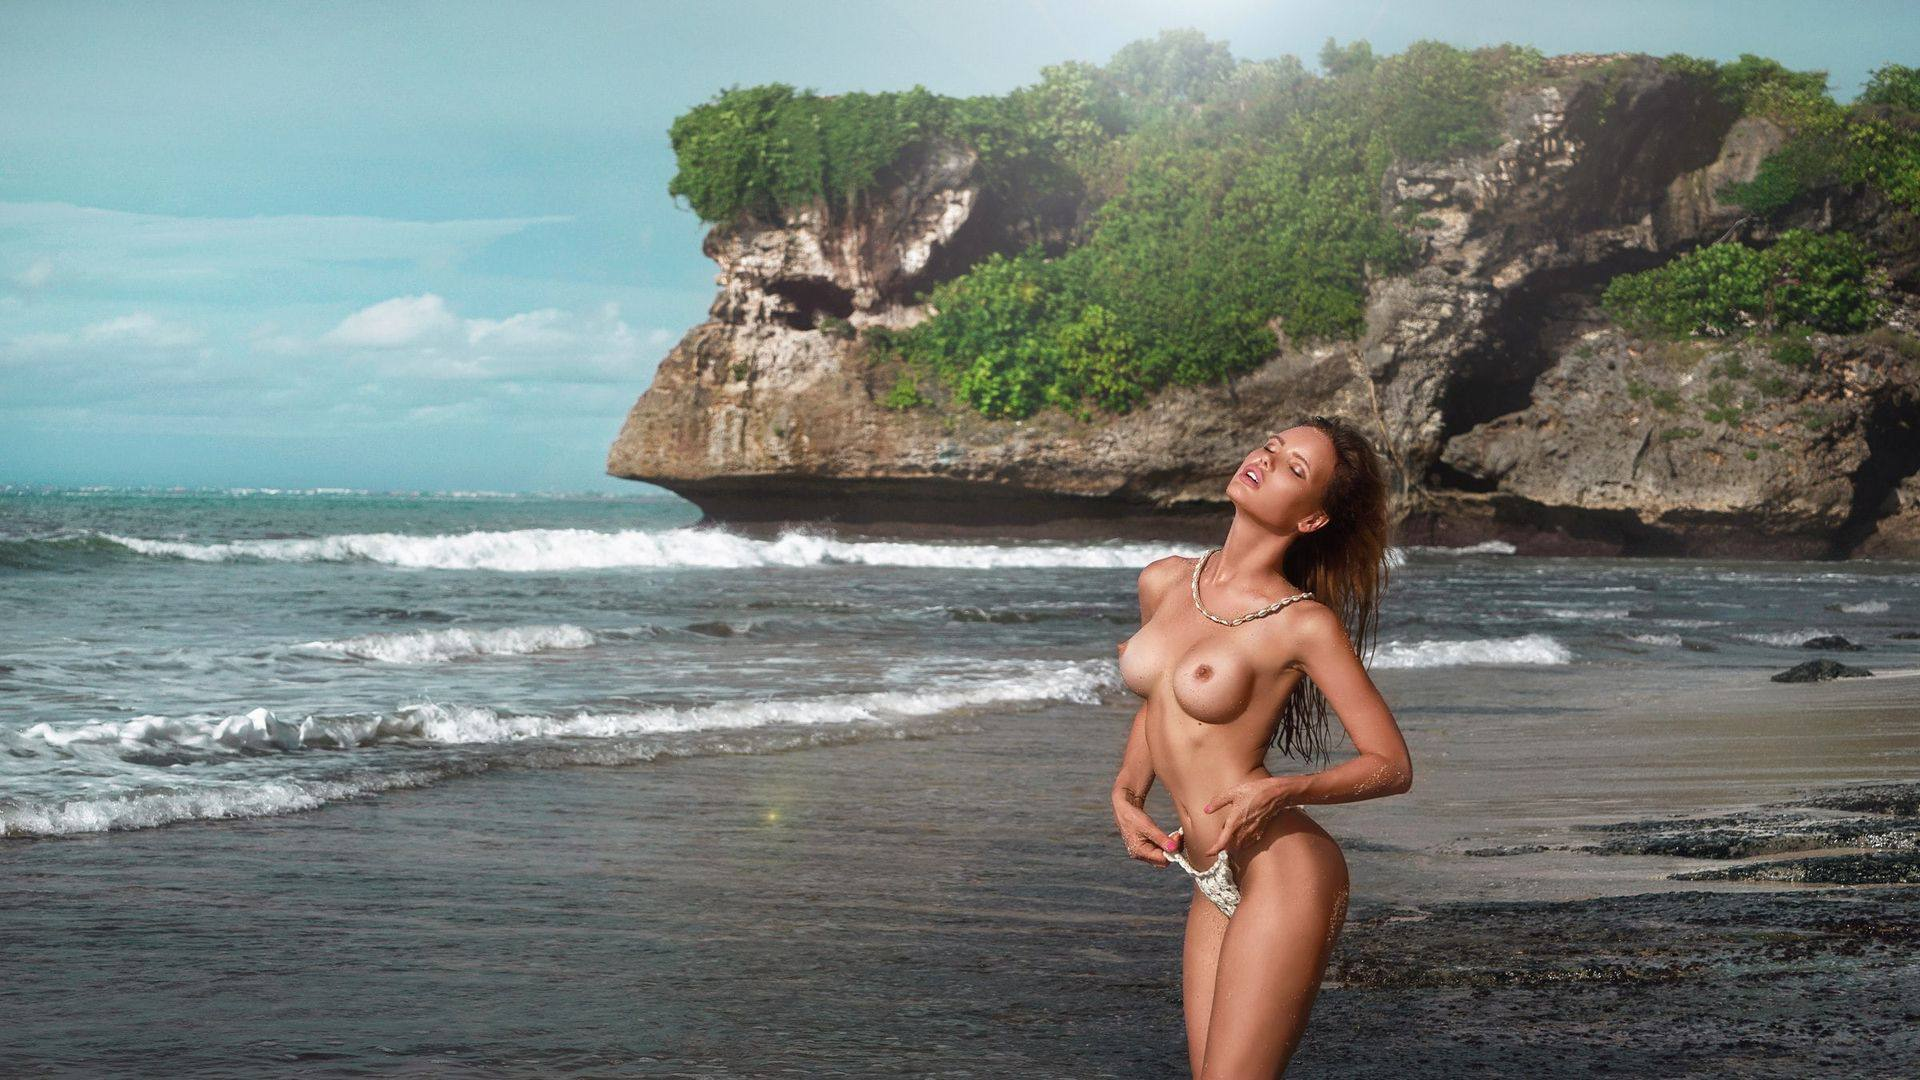 Olya Abramovich – Hot Boobs In Topless Beach Photoshoot (nsfw) 0002